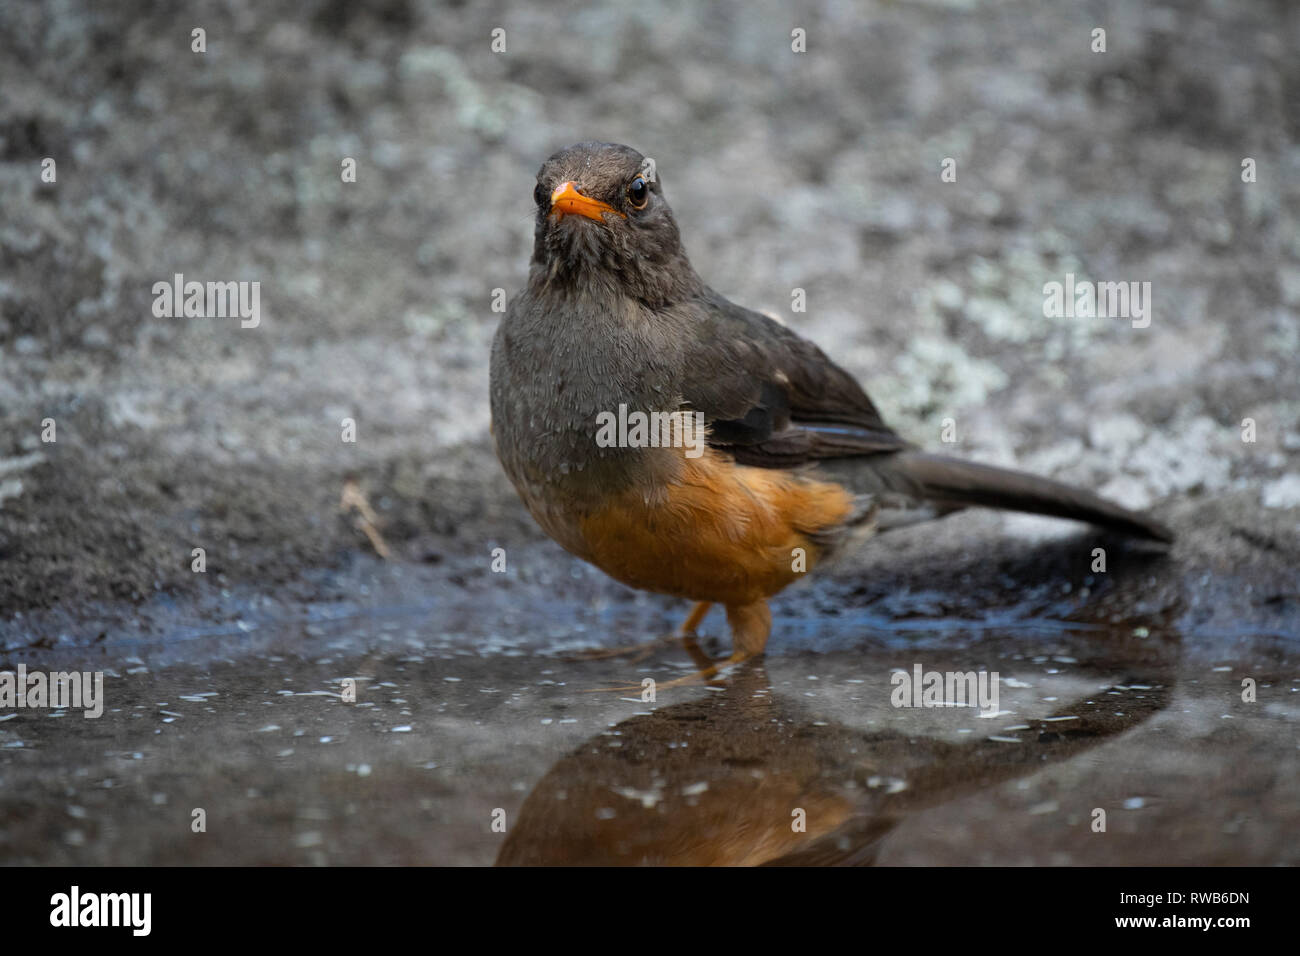 olive thrush, Turdus olivaceus, Mgahinga Gorilla National Park, Uganda Stock Photo